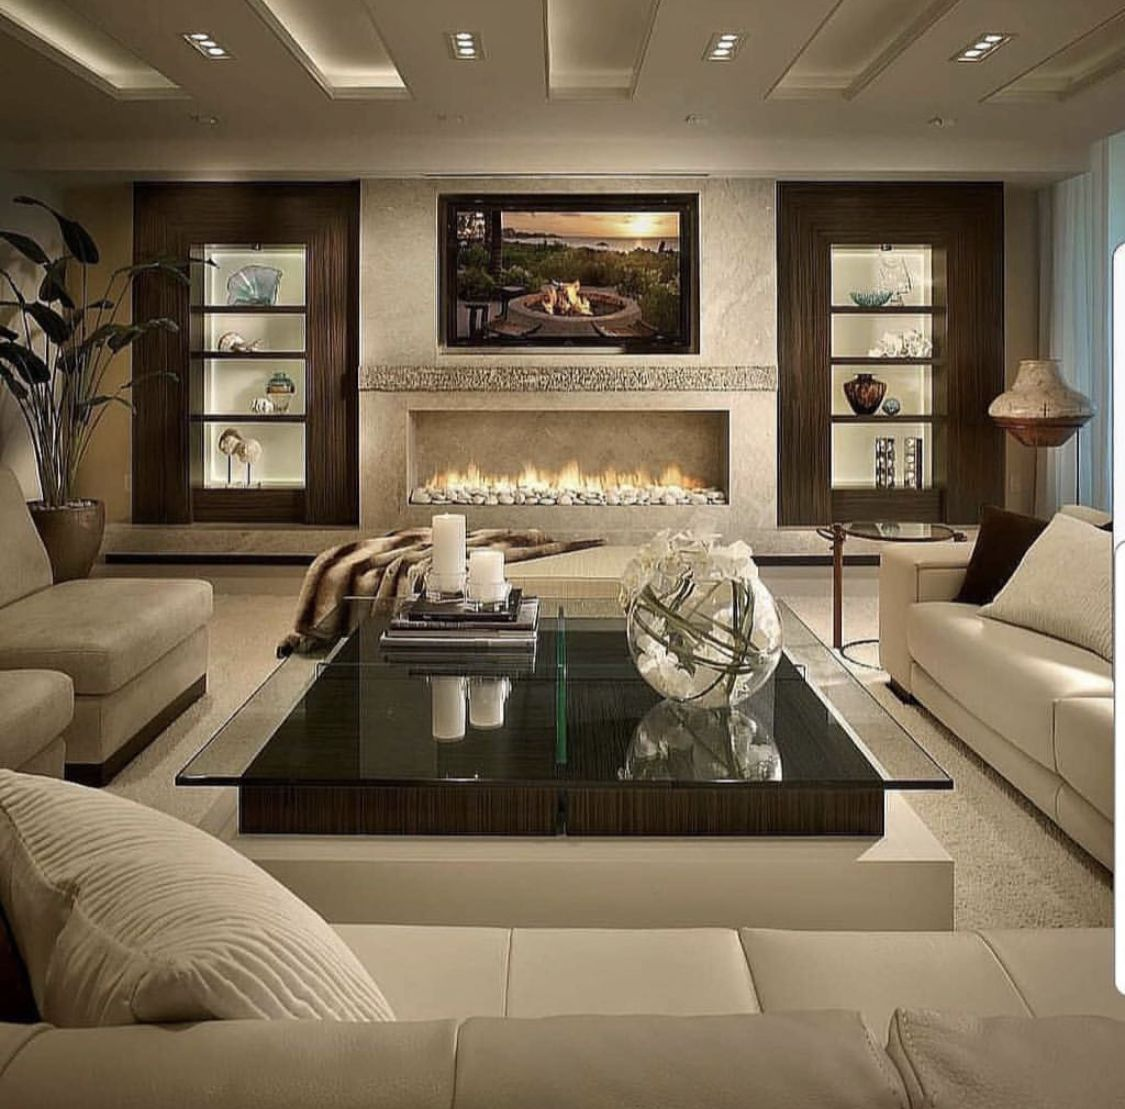 Home Decor 2012 Luxury Homes Interior Decoration Living: Pin By Torbicaaaa On Dream House. In 2019